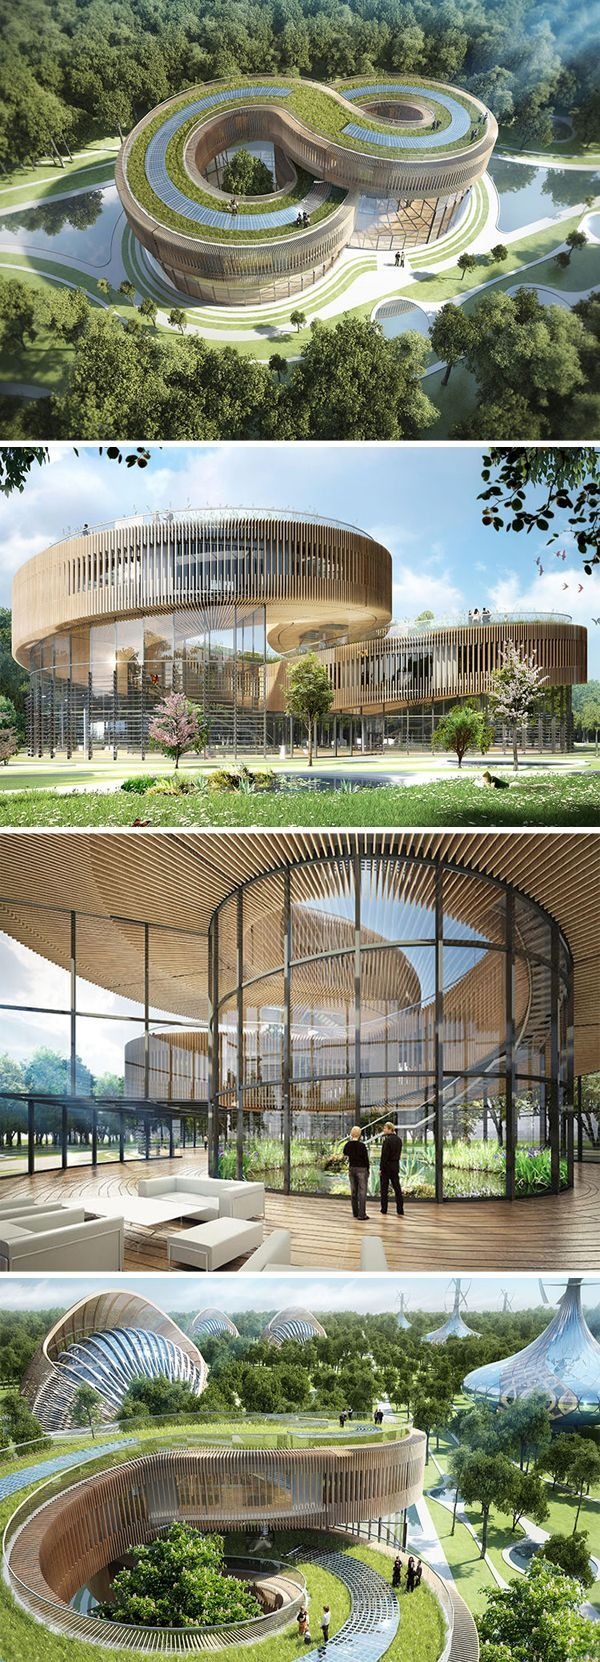 This Eco-Village Is An Environmentalist's Dream #modernarchitecture